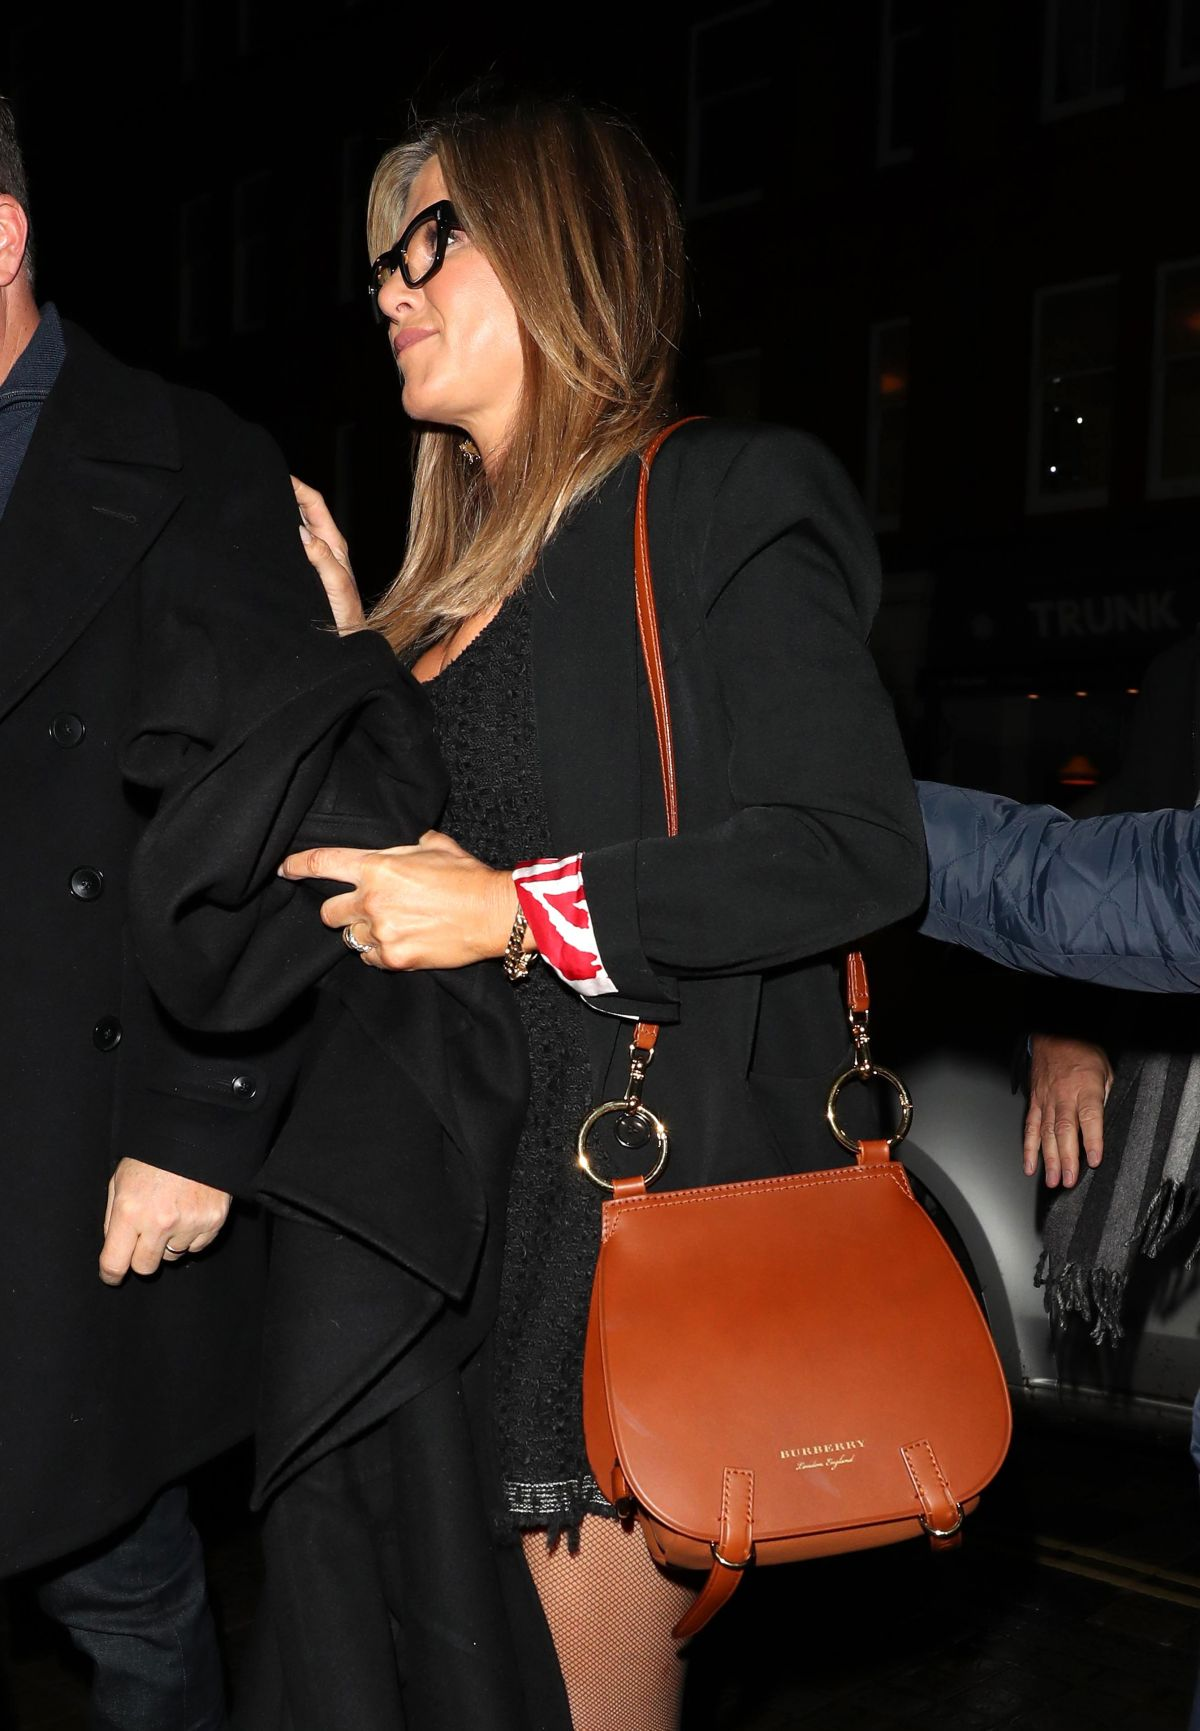 Jennifer Aniston At the Chiltern Firehouse in London   jennifer-aniston-at-the-chiltern-firehouse-in-london_6